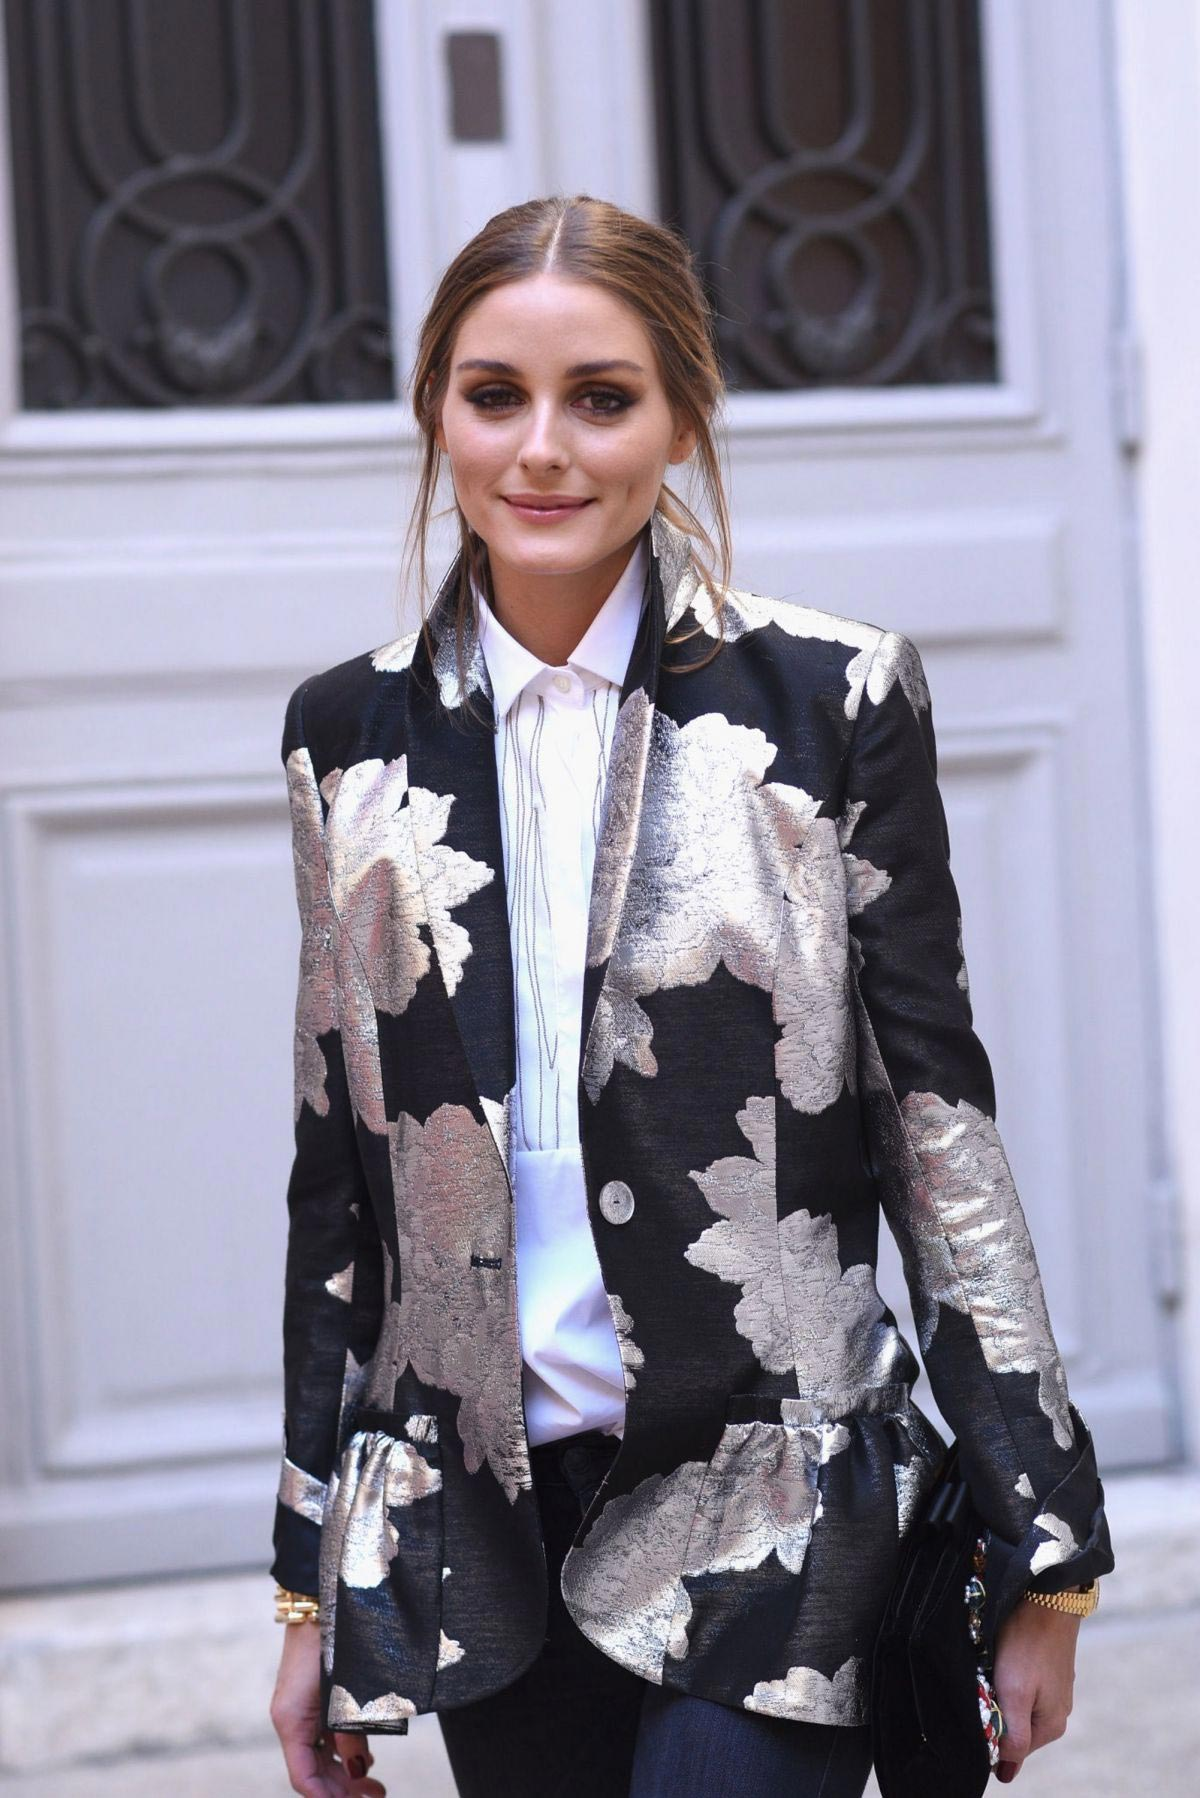 Watch - Palermo olivia get the look for less video